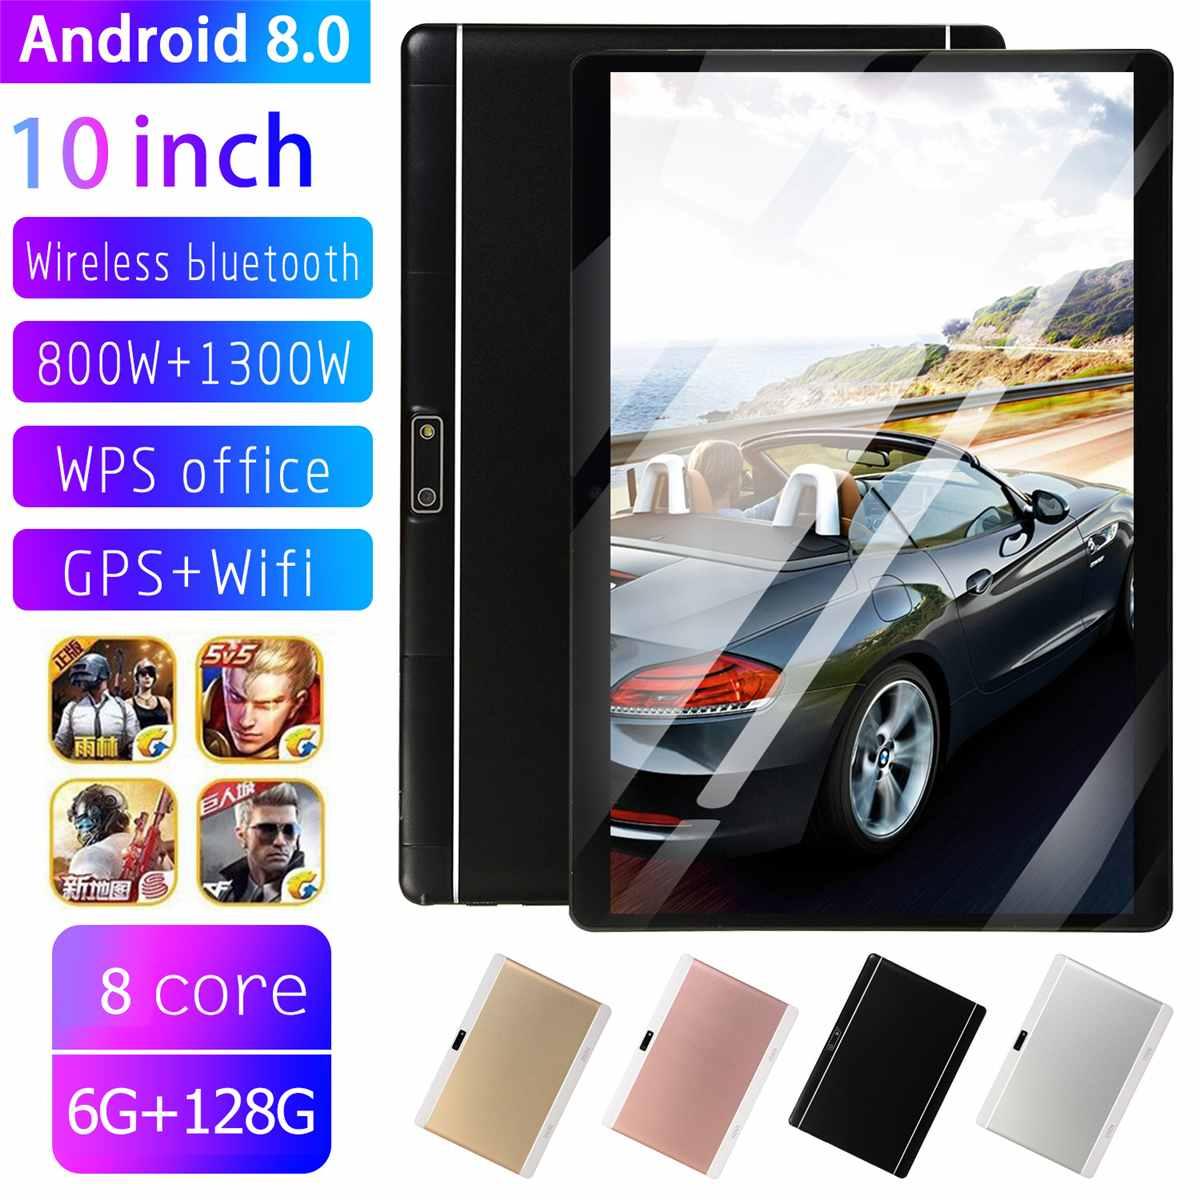 10.1 Inch HD Tablet PC 6+128GB 9000mAh Dual Cameras/SIMs Octa Cores 3G Call Tab Android 8.0 Tab GPS WIFi Bluetooth 4.0 Pad